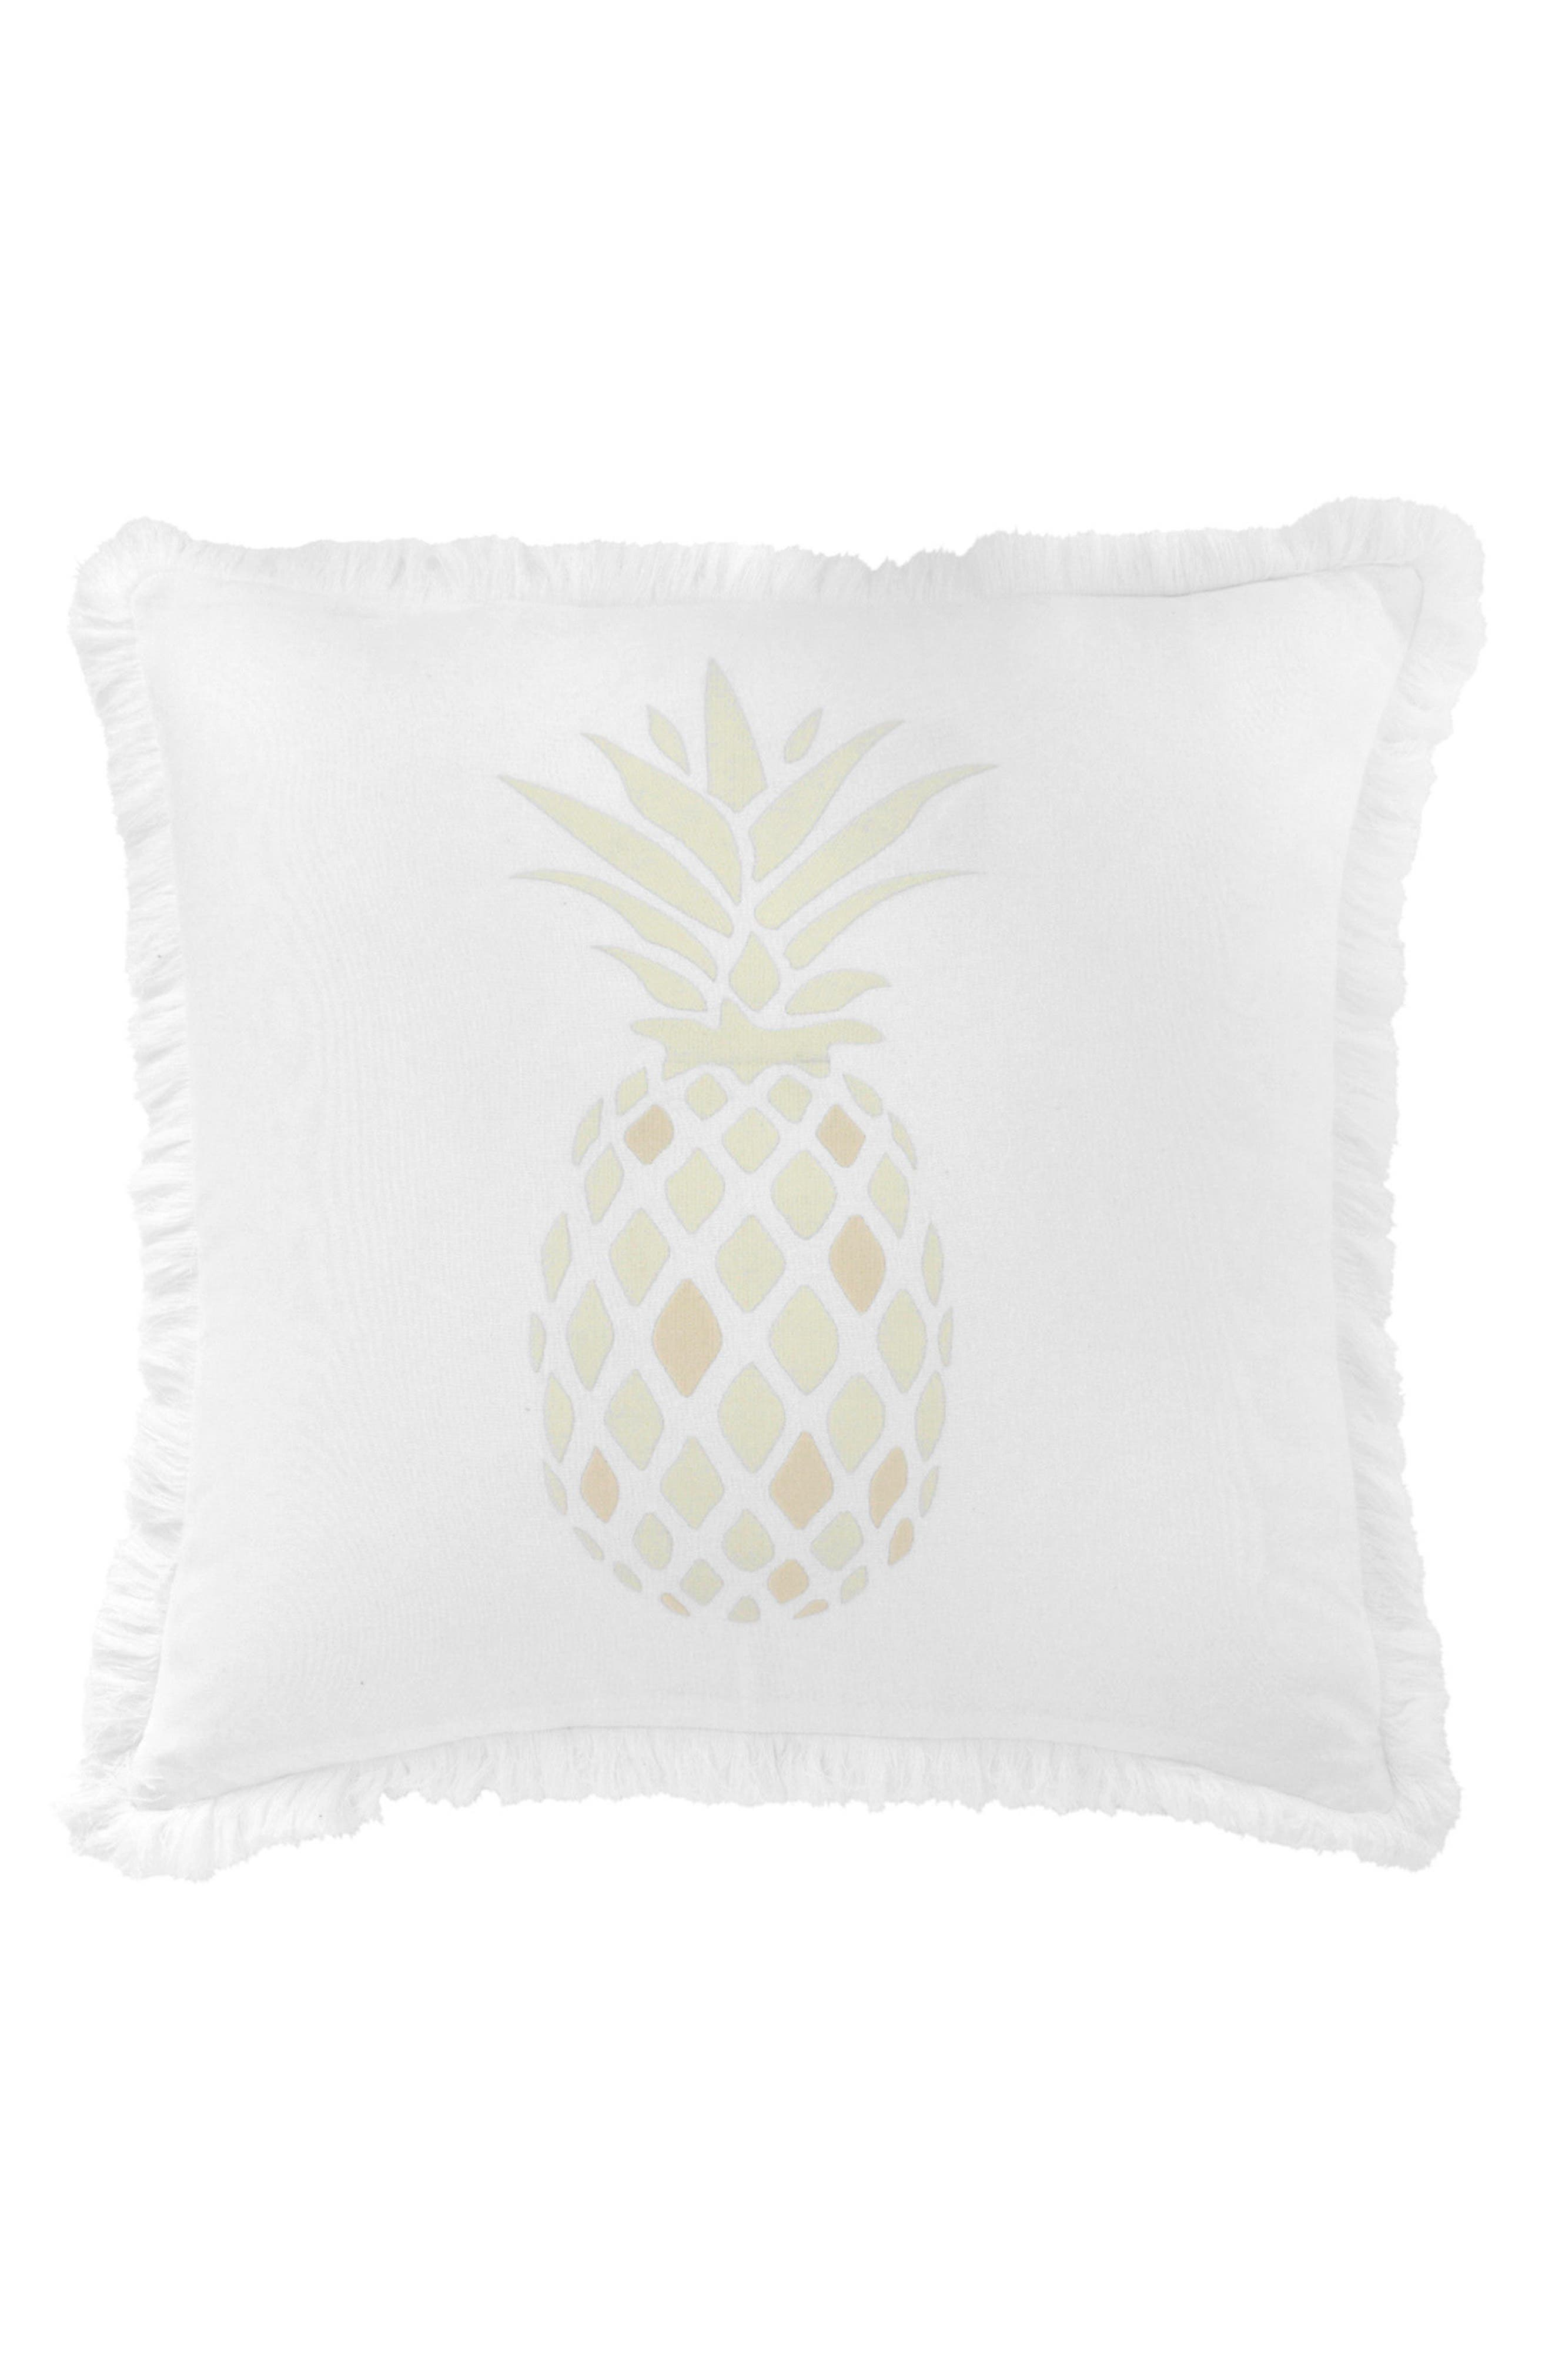 Southern Hospitality Pineapple Accent Pillow,                         Main,                         color, 100